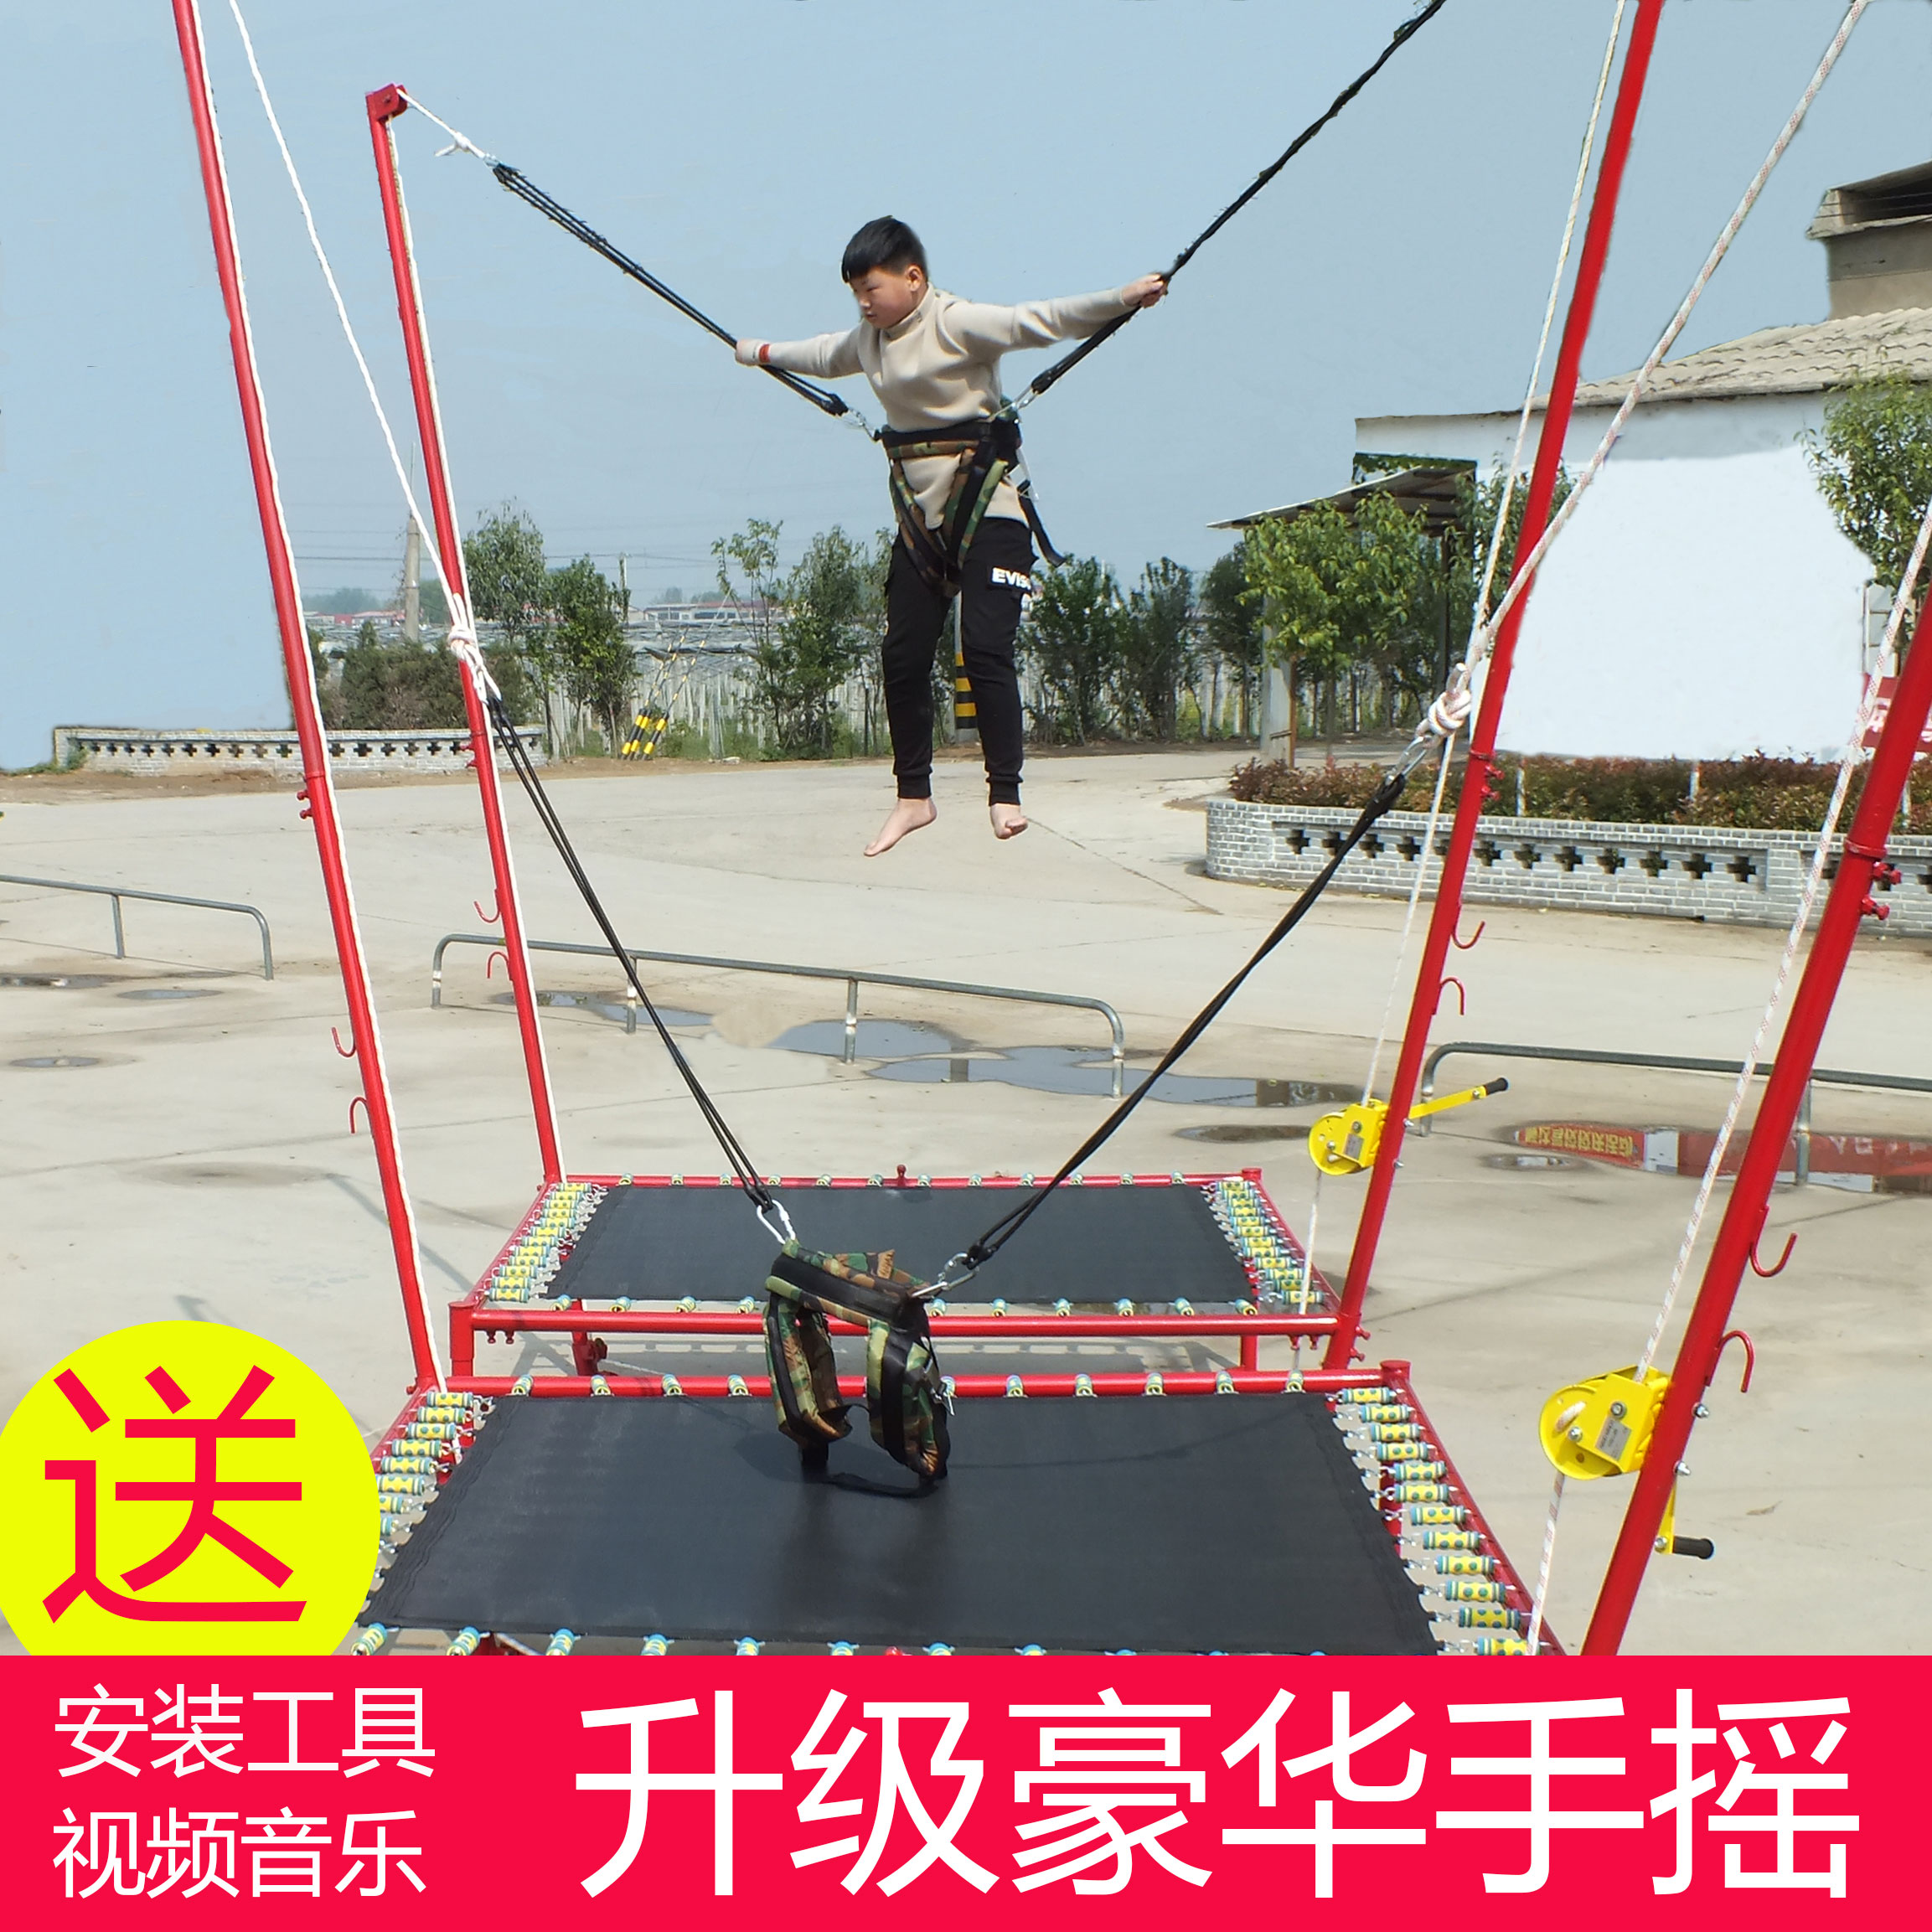 Commercial outdoor childrens trampoline childrens trampoline single hand Folding Trampoline outdoor square jump.